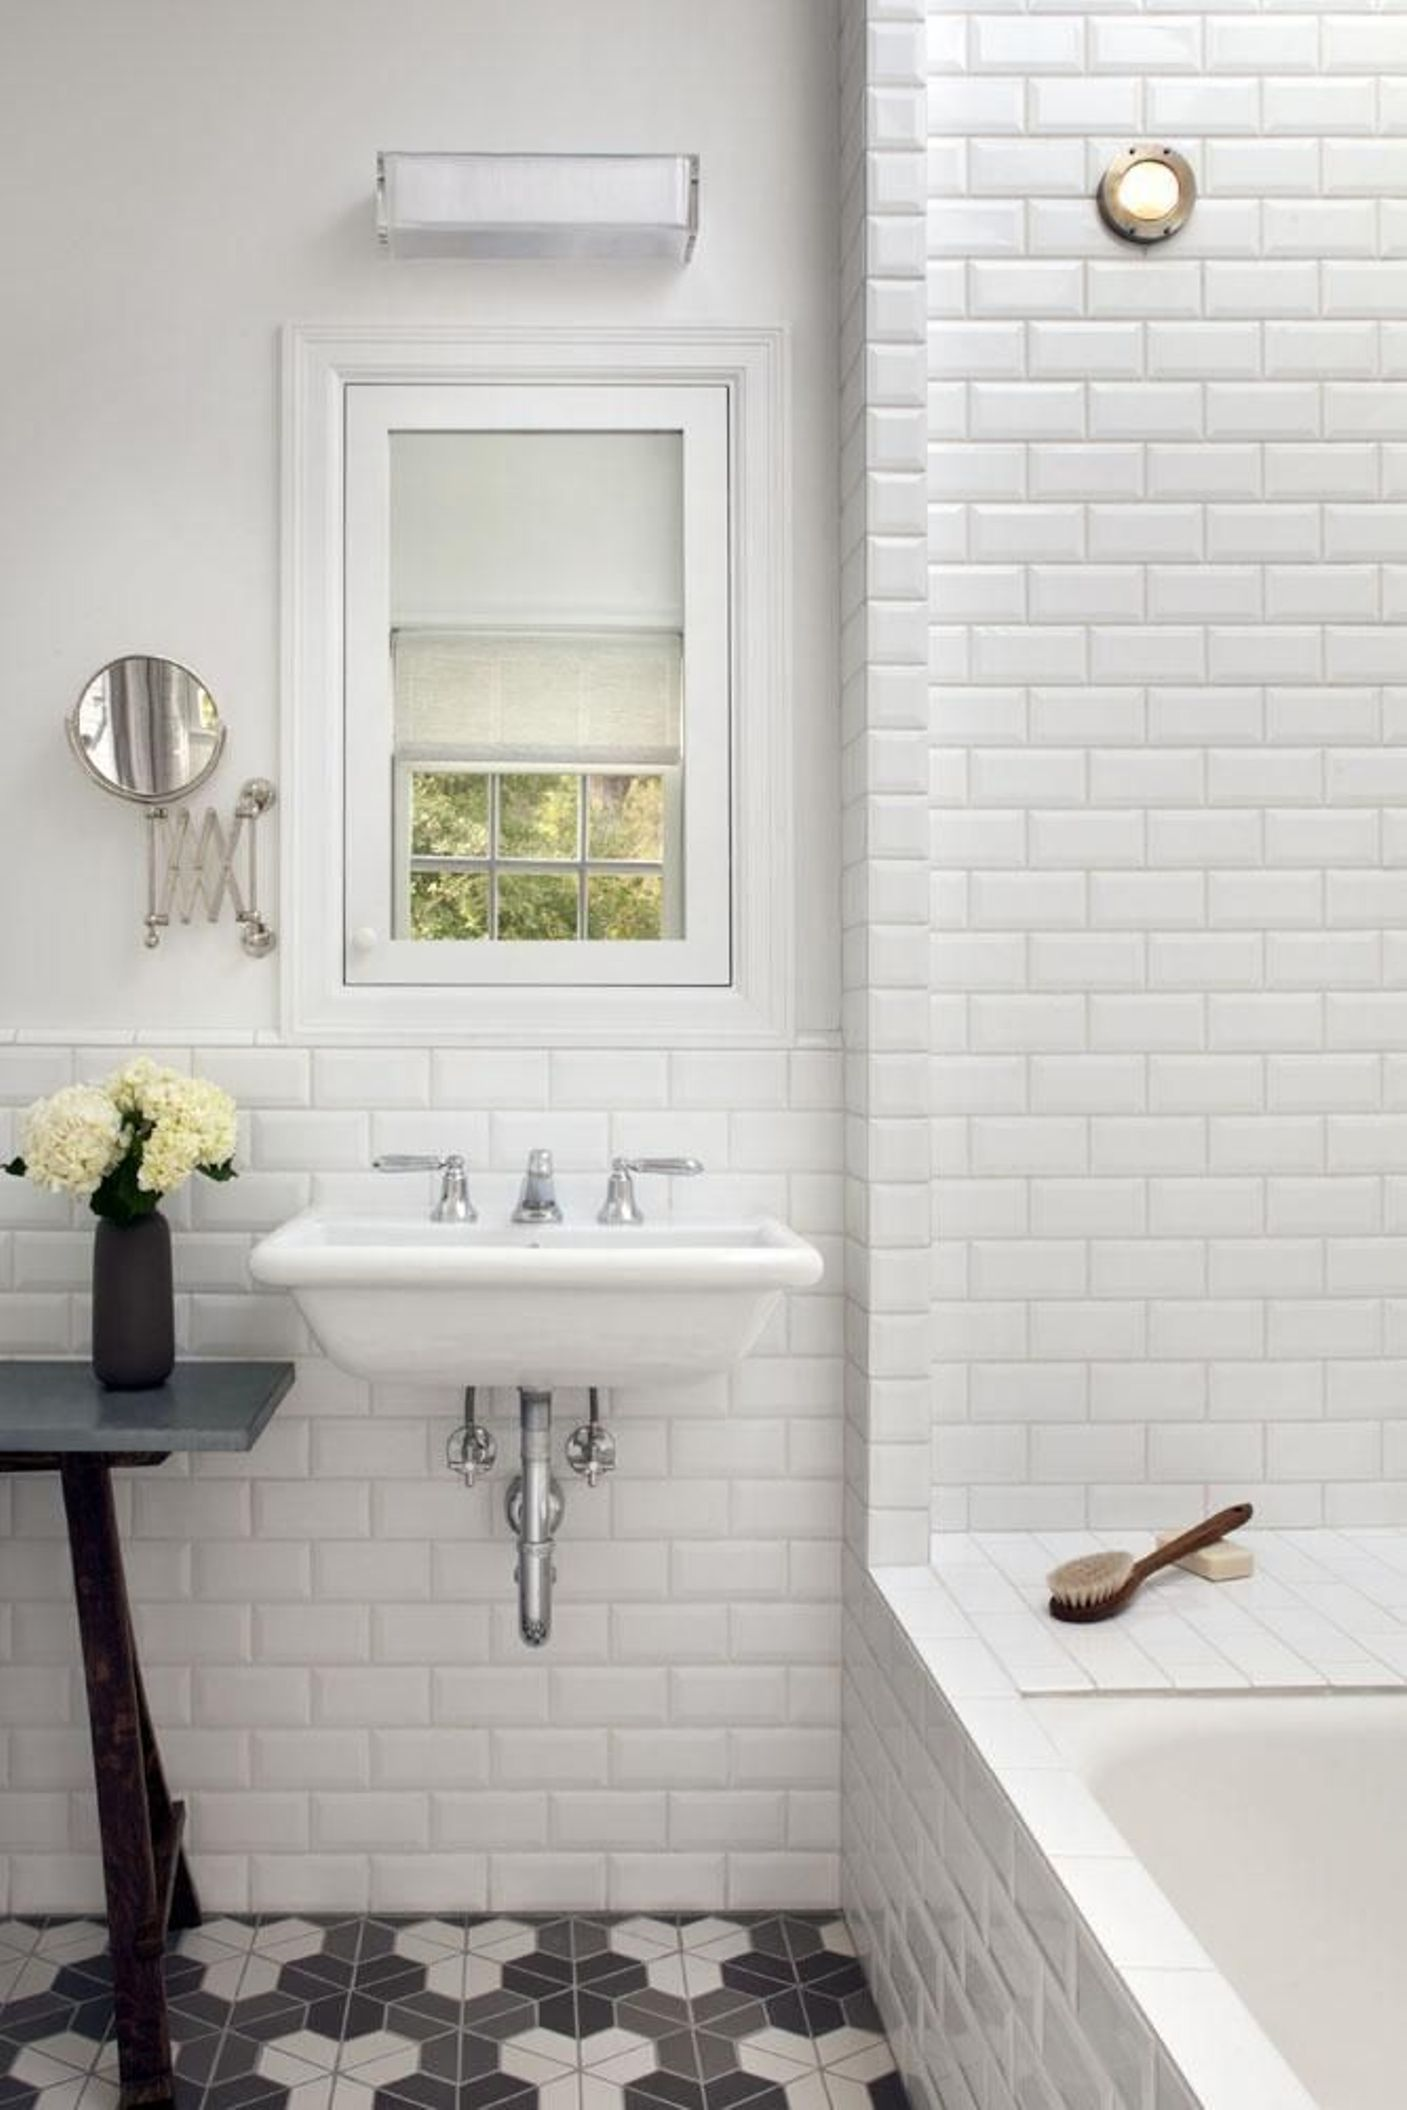 bathroom subway tile bathroom walls white beveled subway tile bathroom with graphic hex tile - Bathroom Subway Tile Backsplash